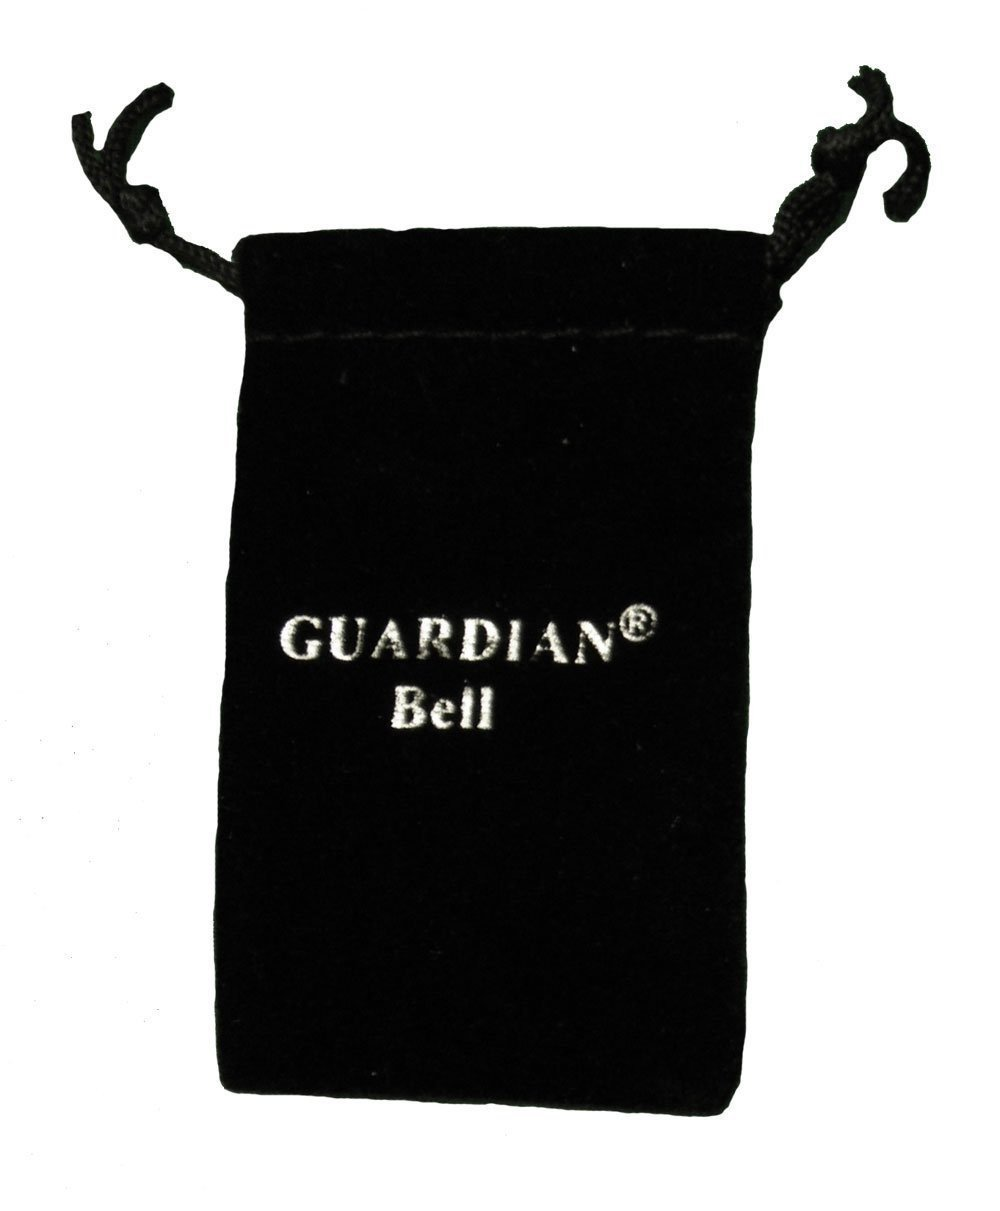 HALO GUARDIAN BIKER BELL WITH HANGER by Guardian® Bell